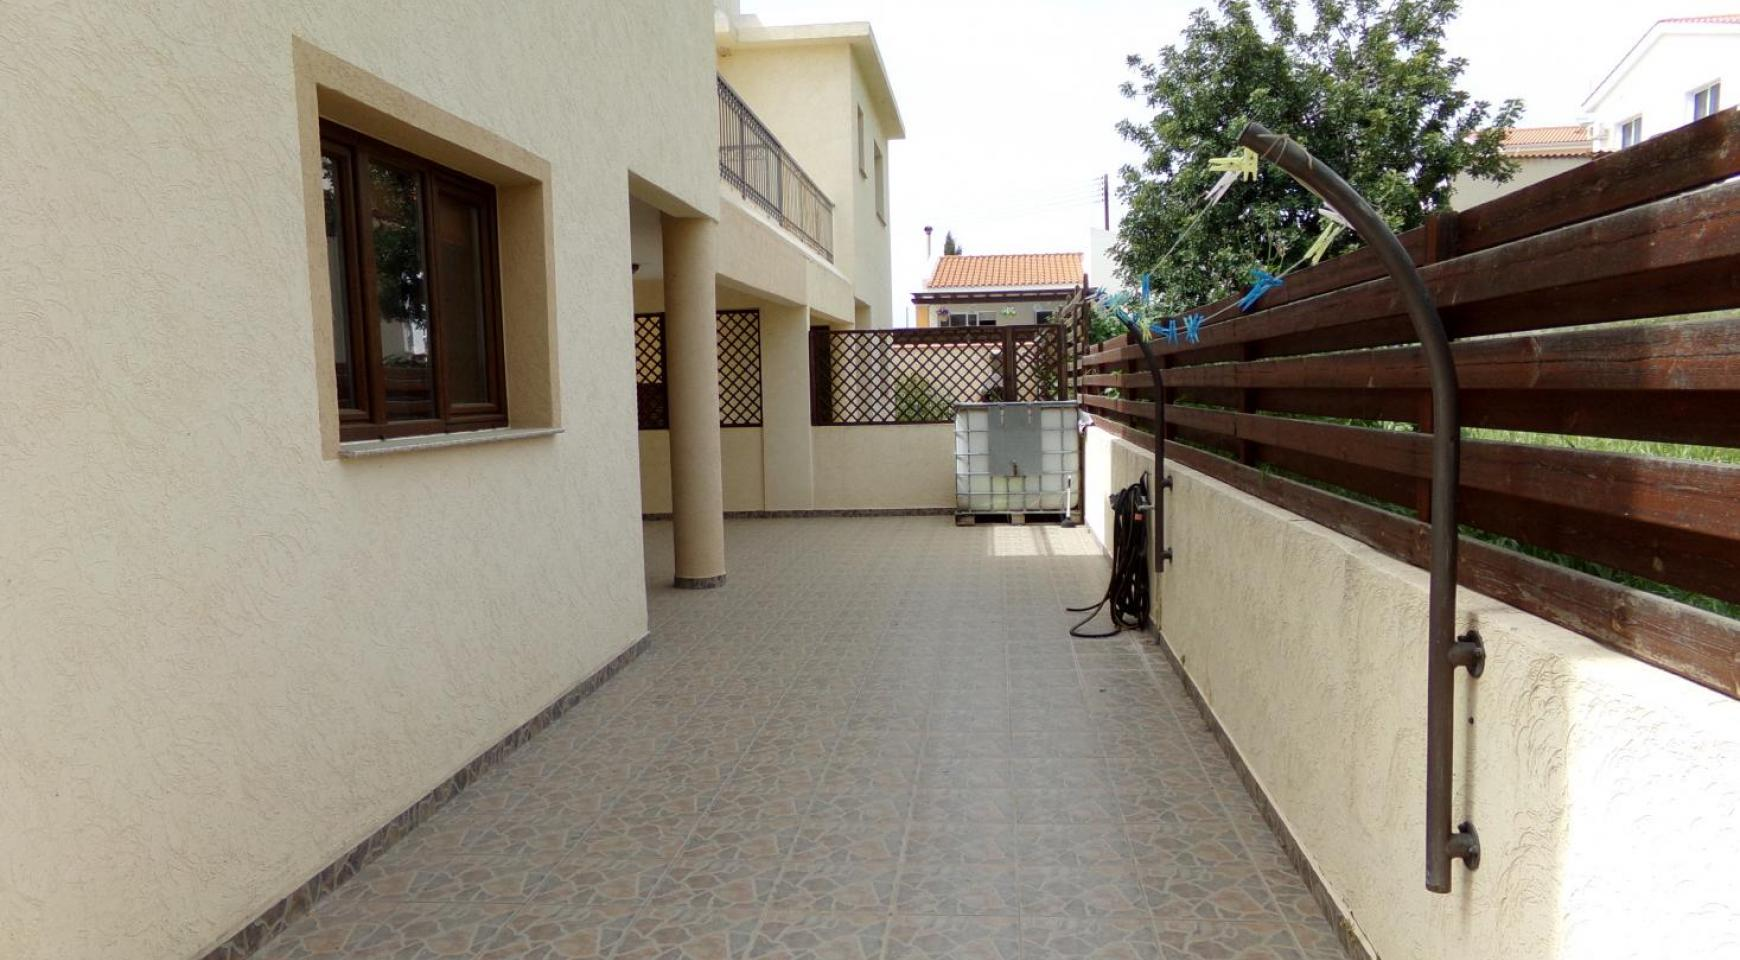 4 Bedroom Villa with Sea and Mountain Views in Pissouri Village - 11